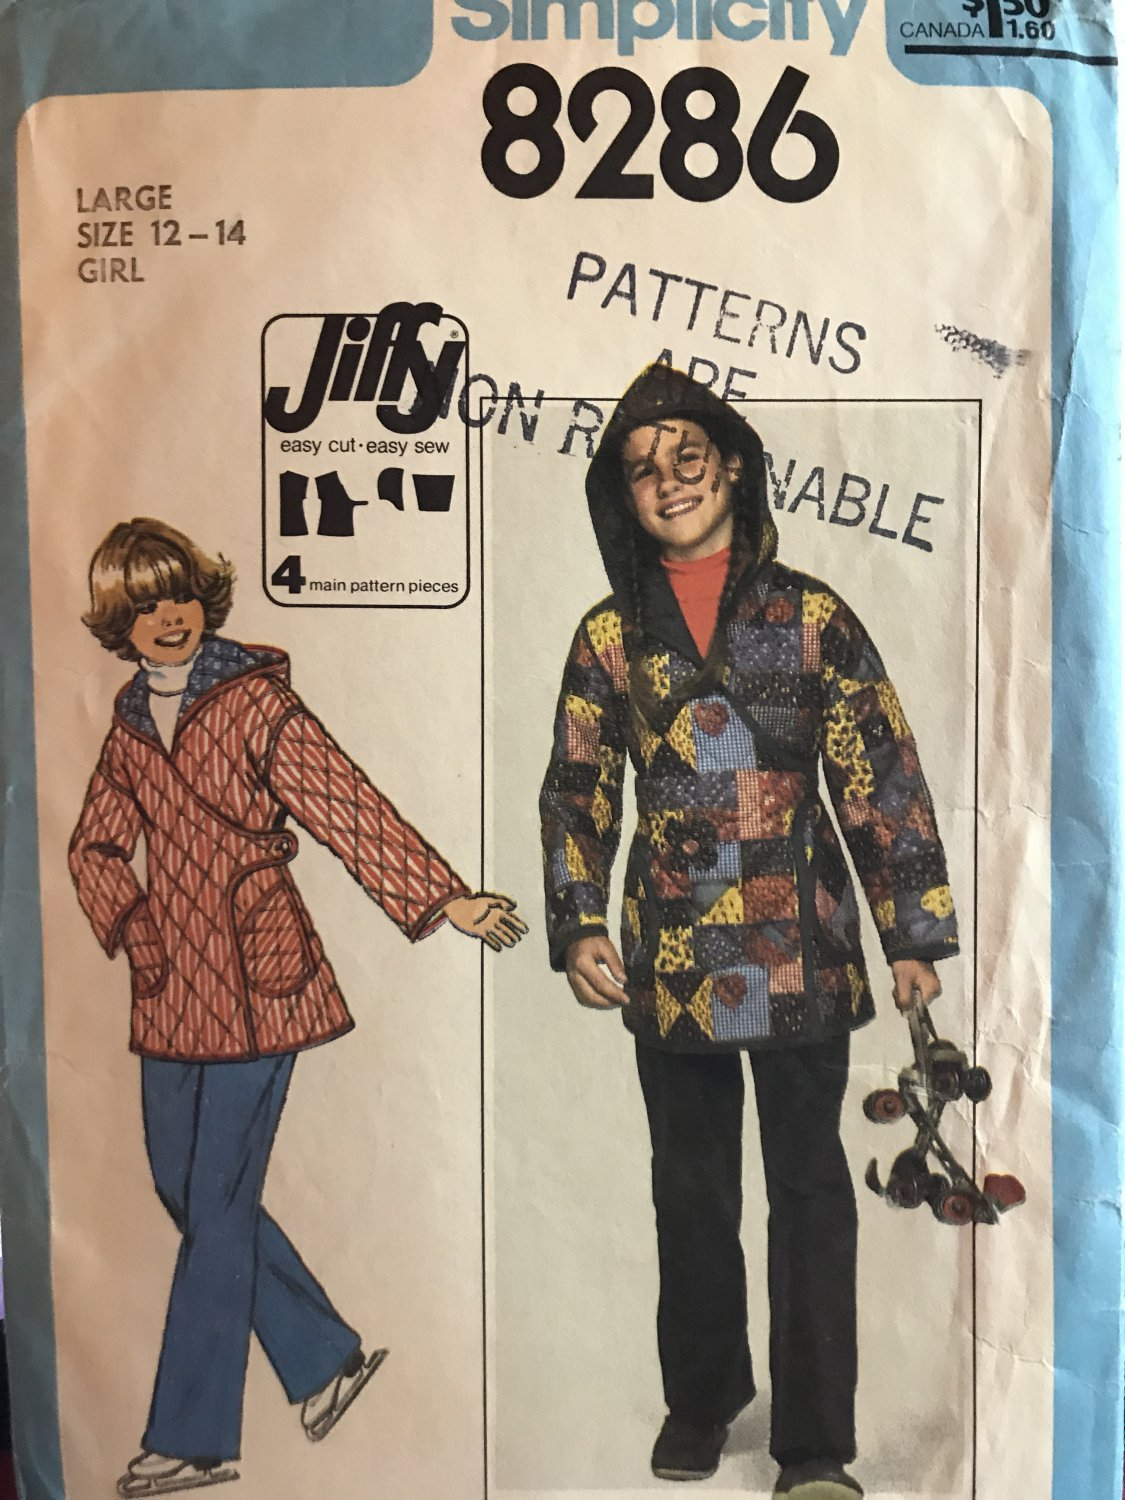 Simplicity 8286 Girls Jacket Sewing Pattern Vintage 1977 pattern Size 12 -14 with Kimono Sleeves